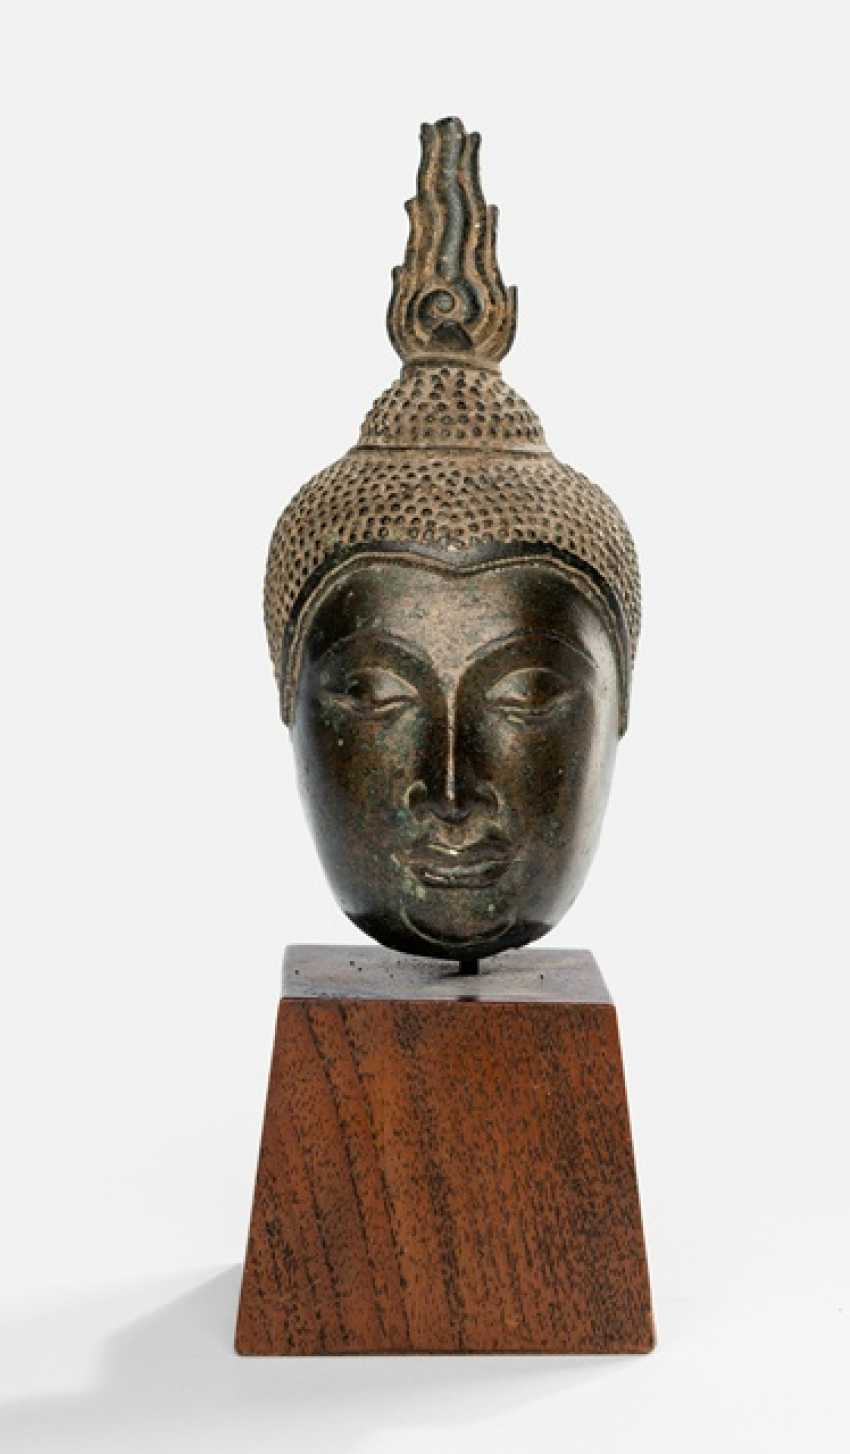 Fragment of a Buddha head made of Bronze - photo 1